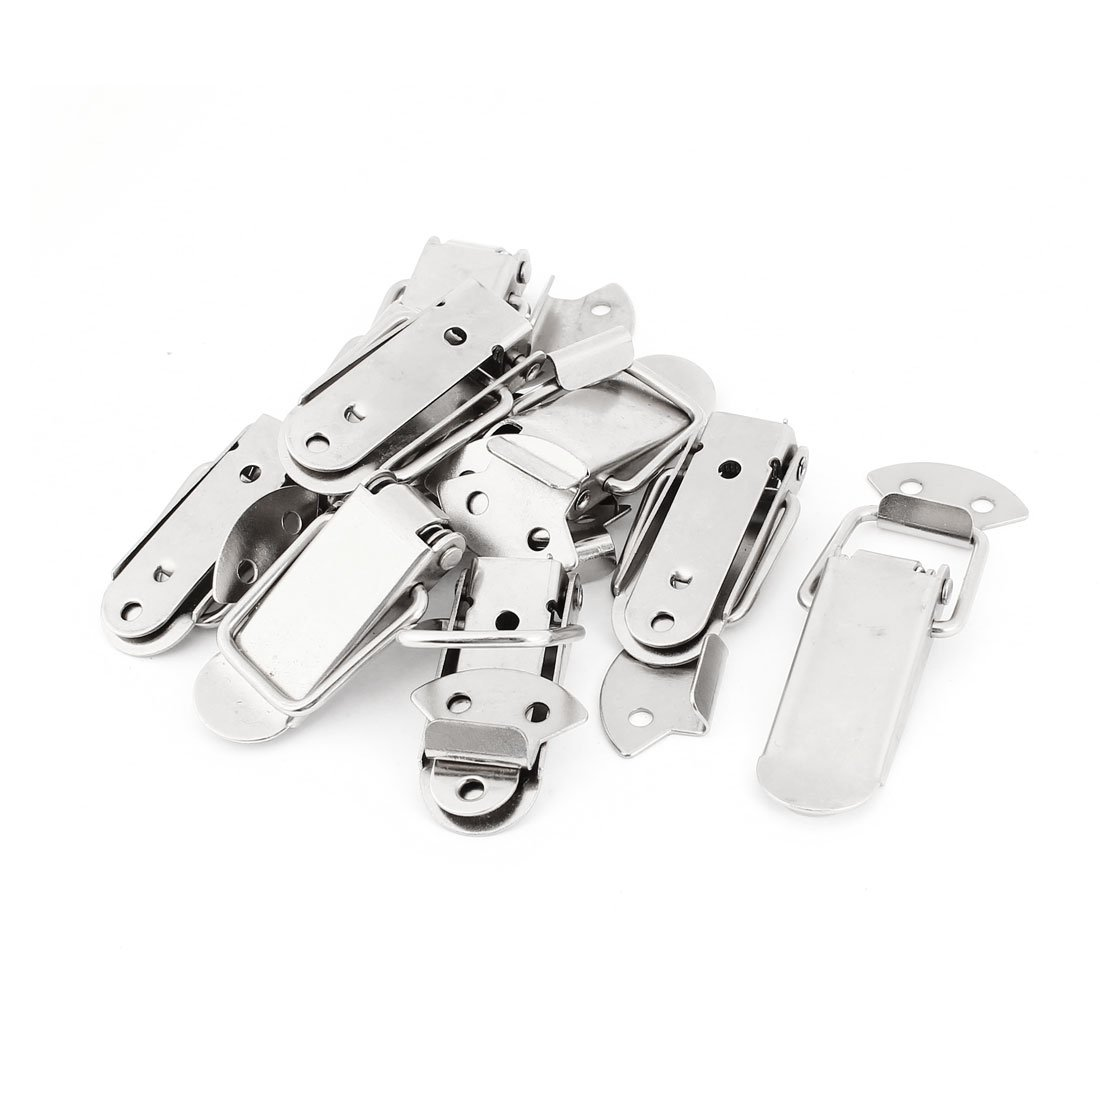 Uxcell Hardware Chests Boxes Spring Loaded Toggle Latch Catch Hasp, 10-Pack